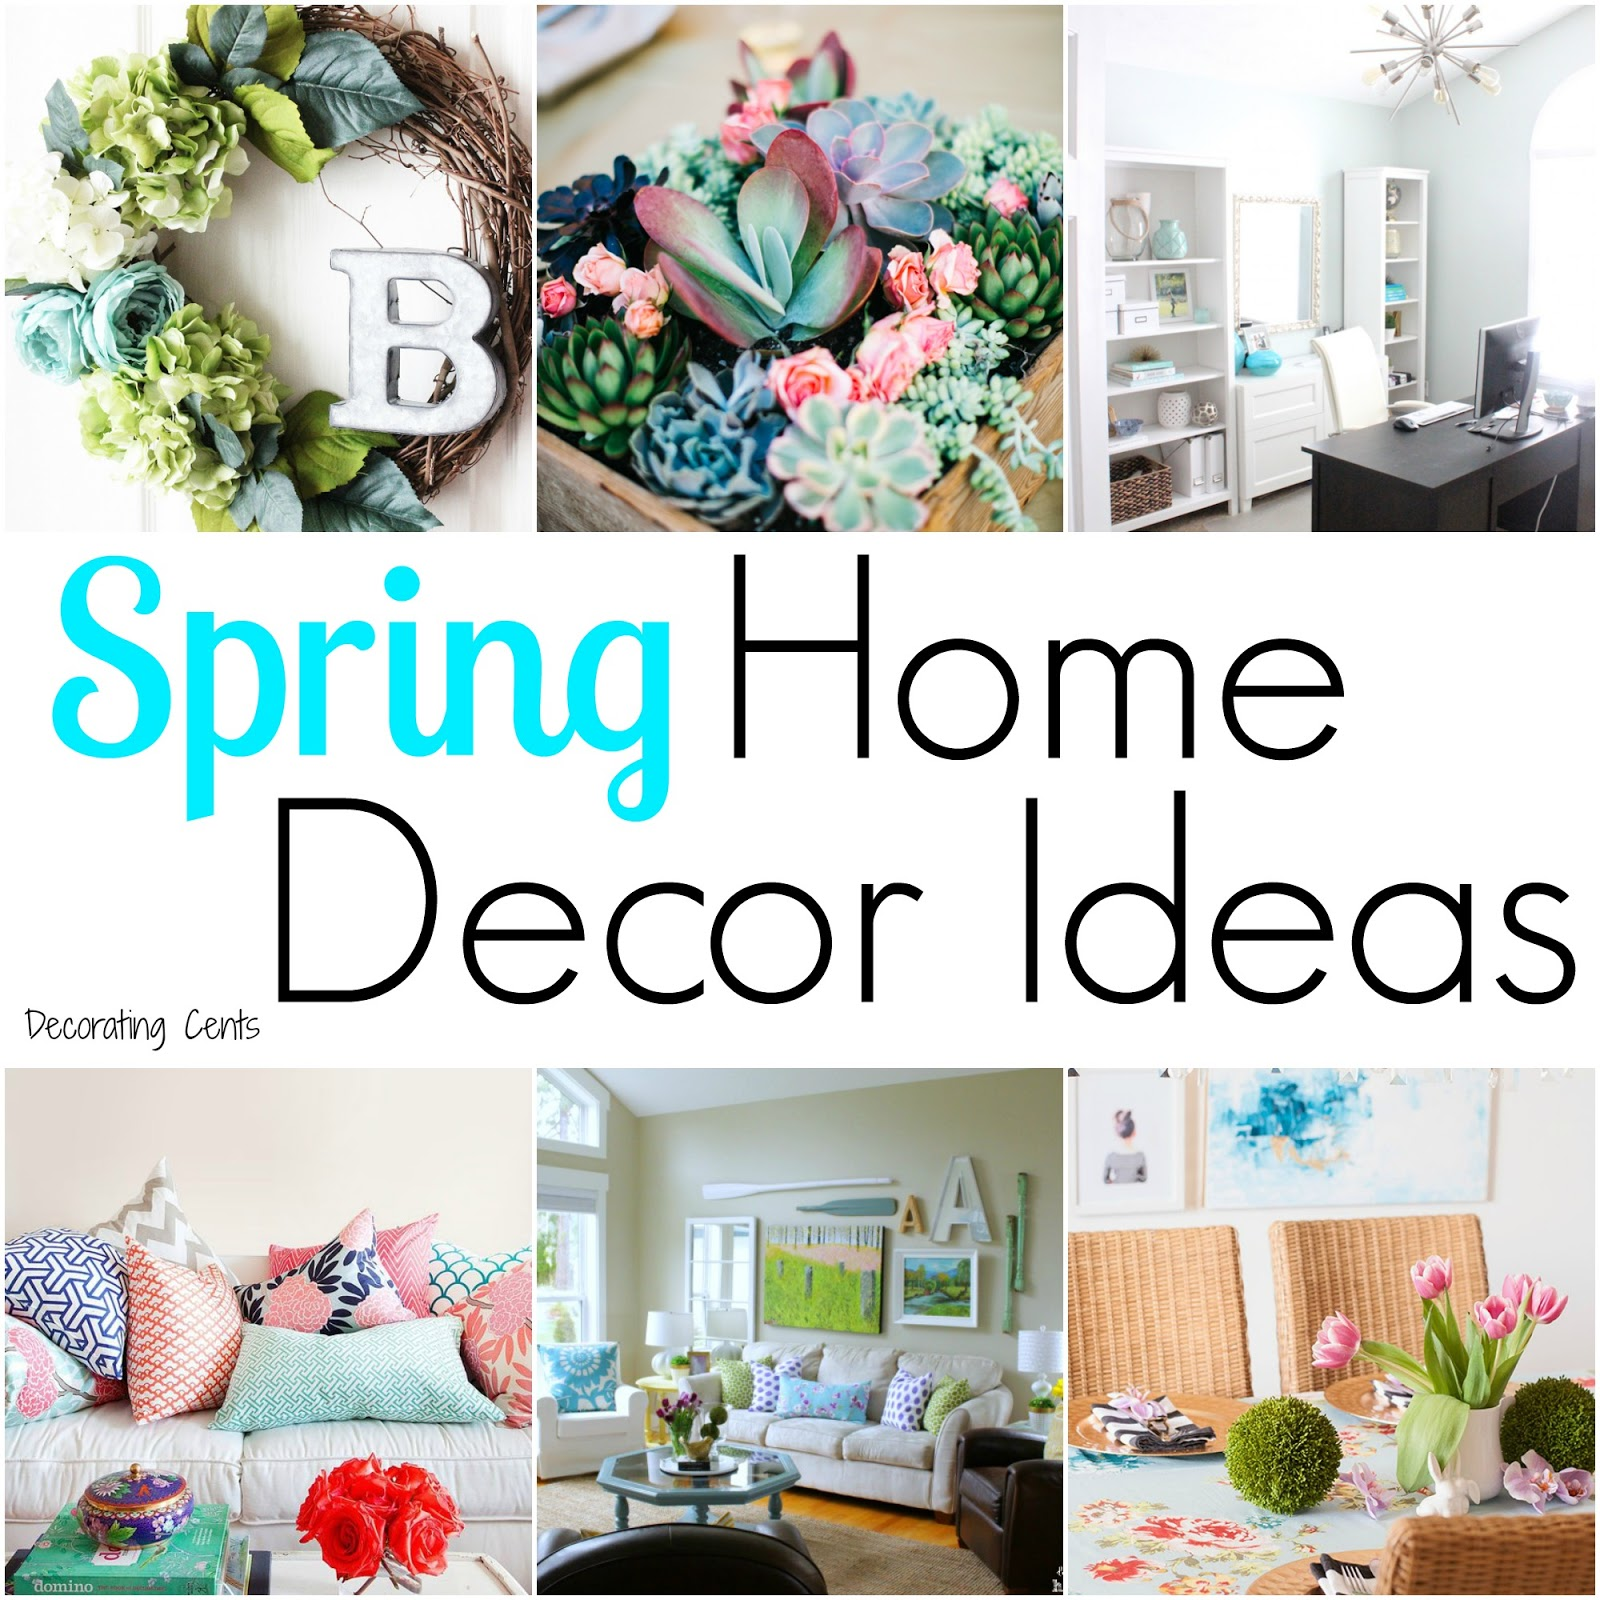 Decorating cents spring home decor ideas for House decorating ideas